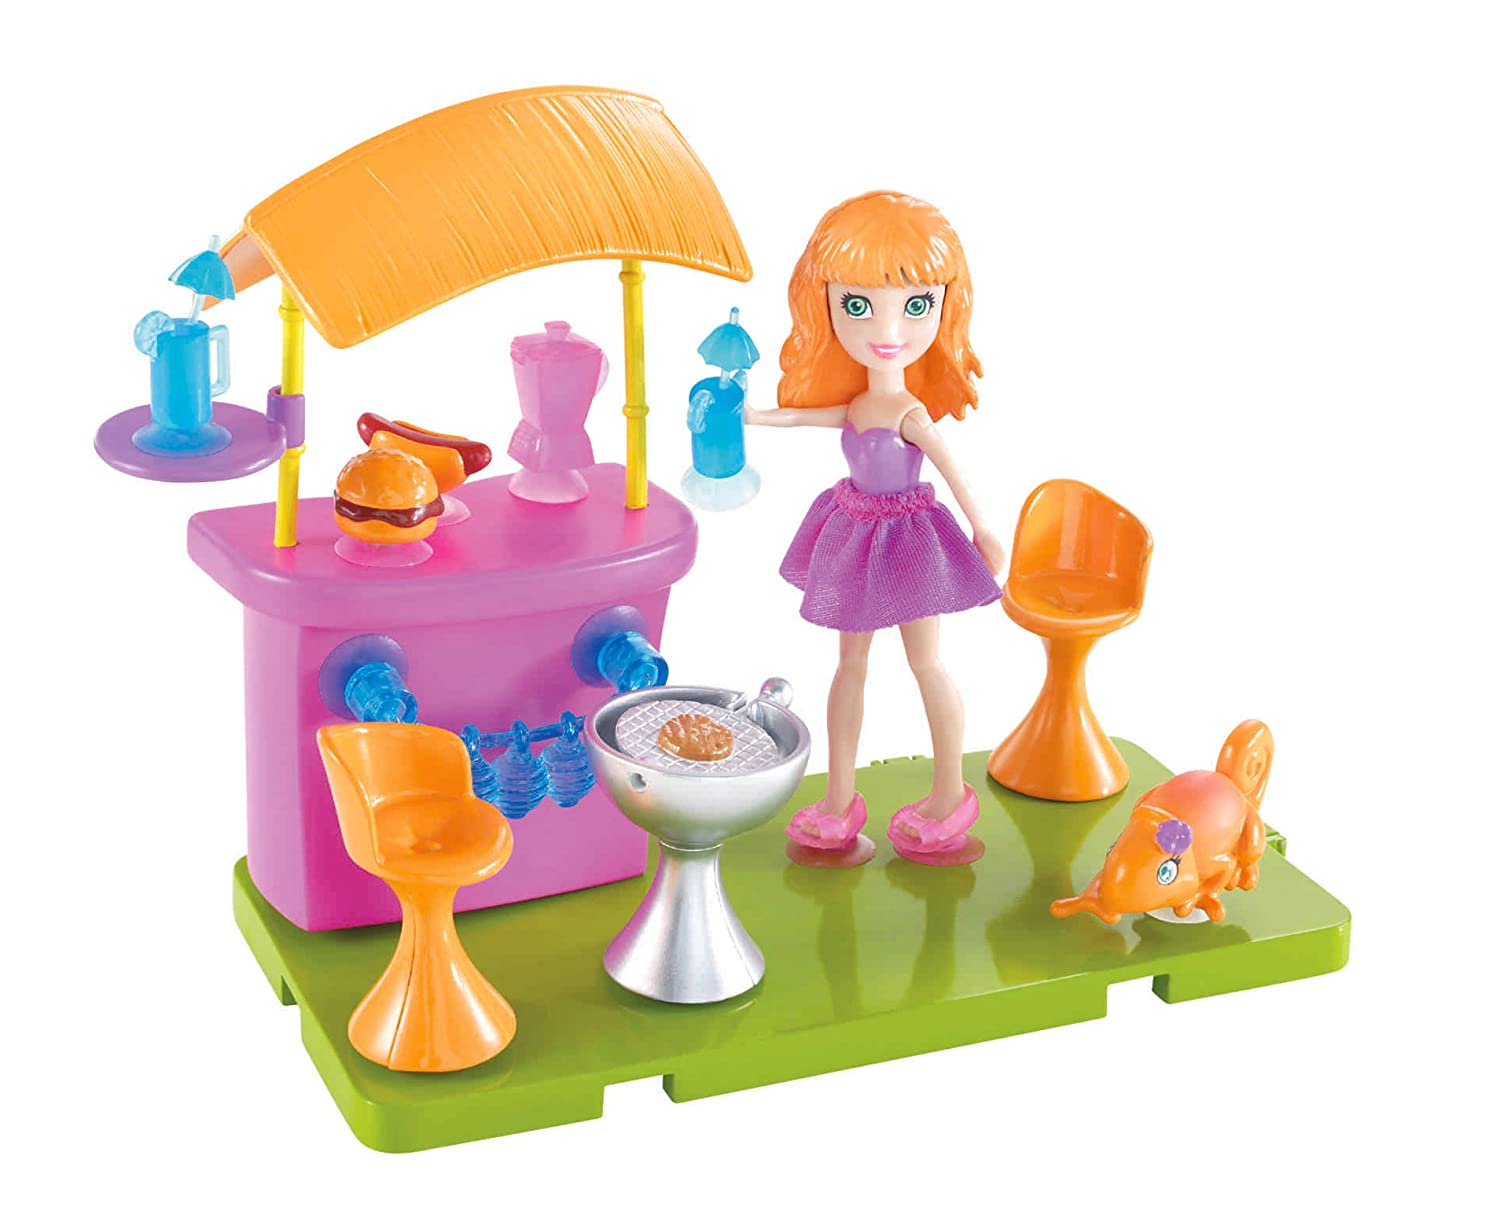 Polly Pocket Hangout Doll House – Top Christmas Toys of 2017